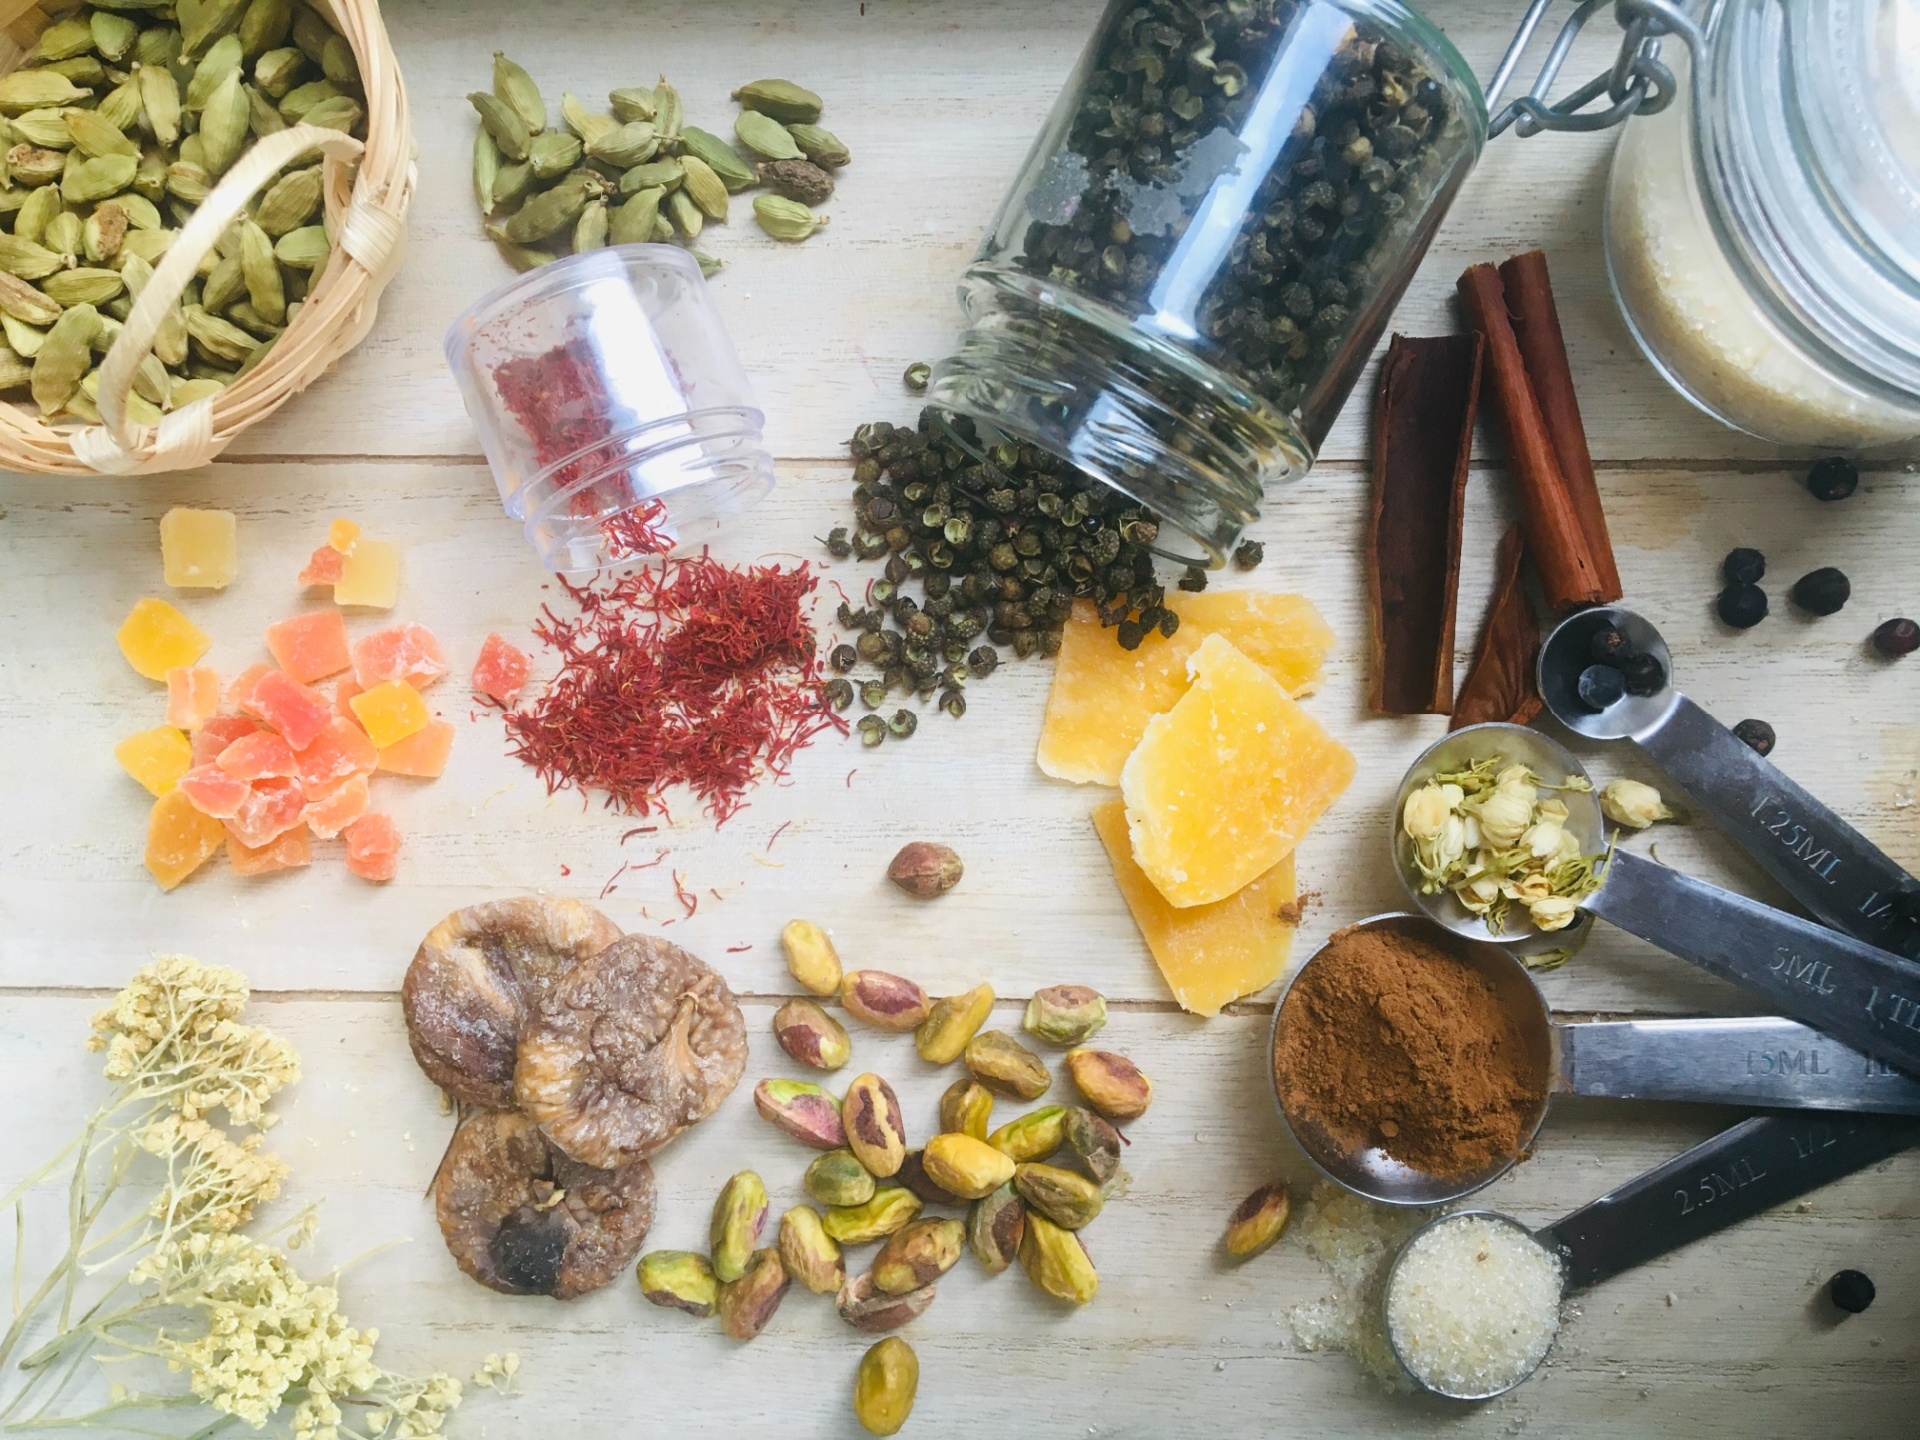 Best Sauces and Spices To Have at Home